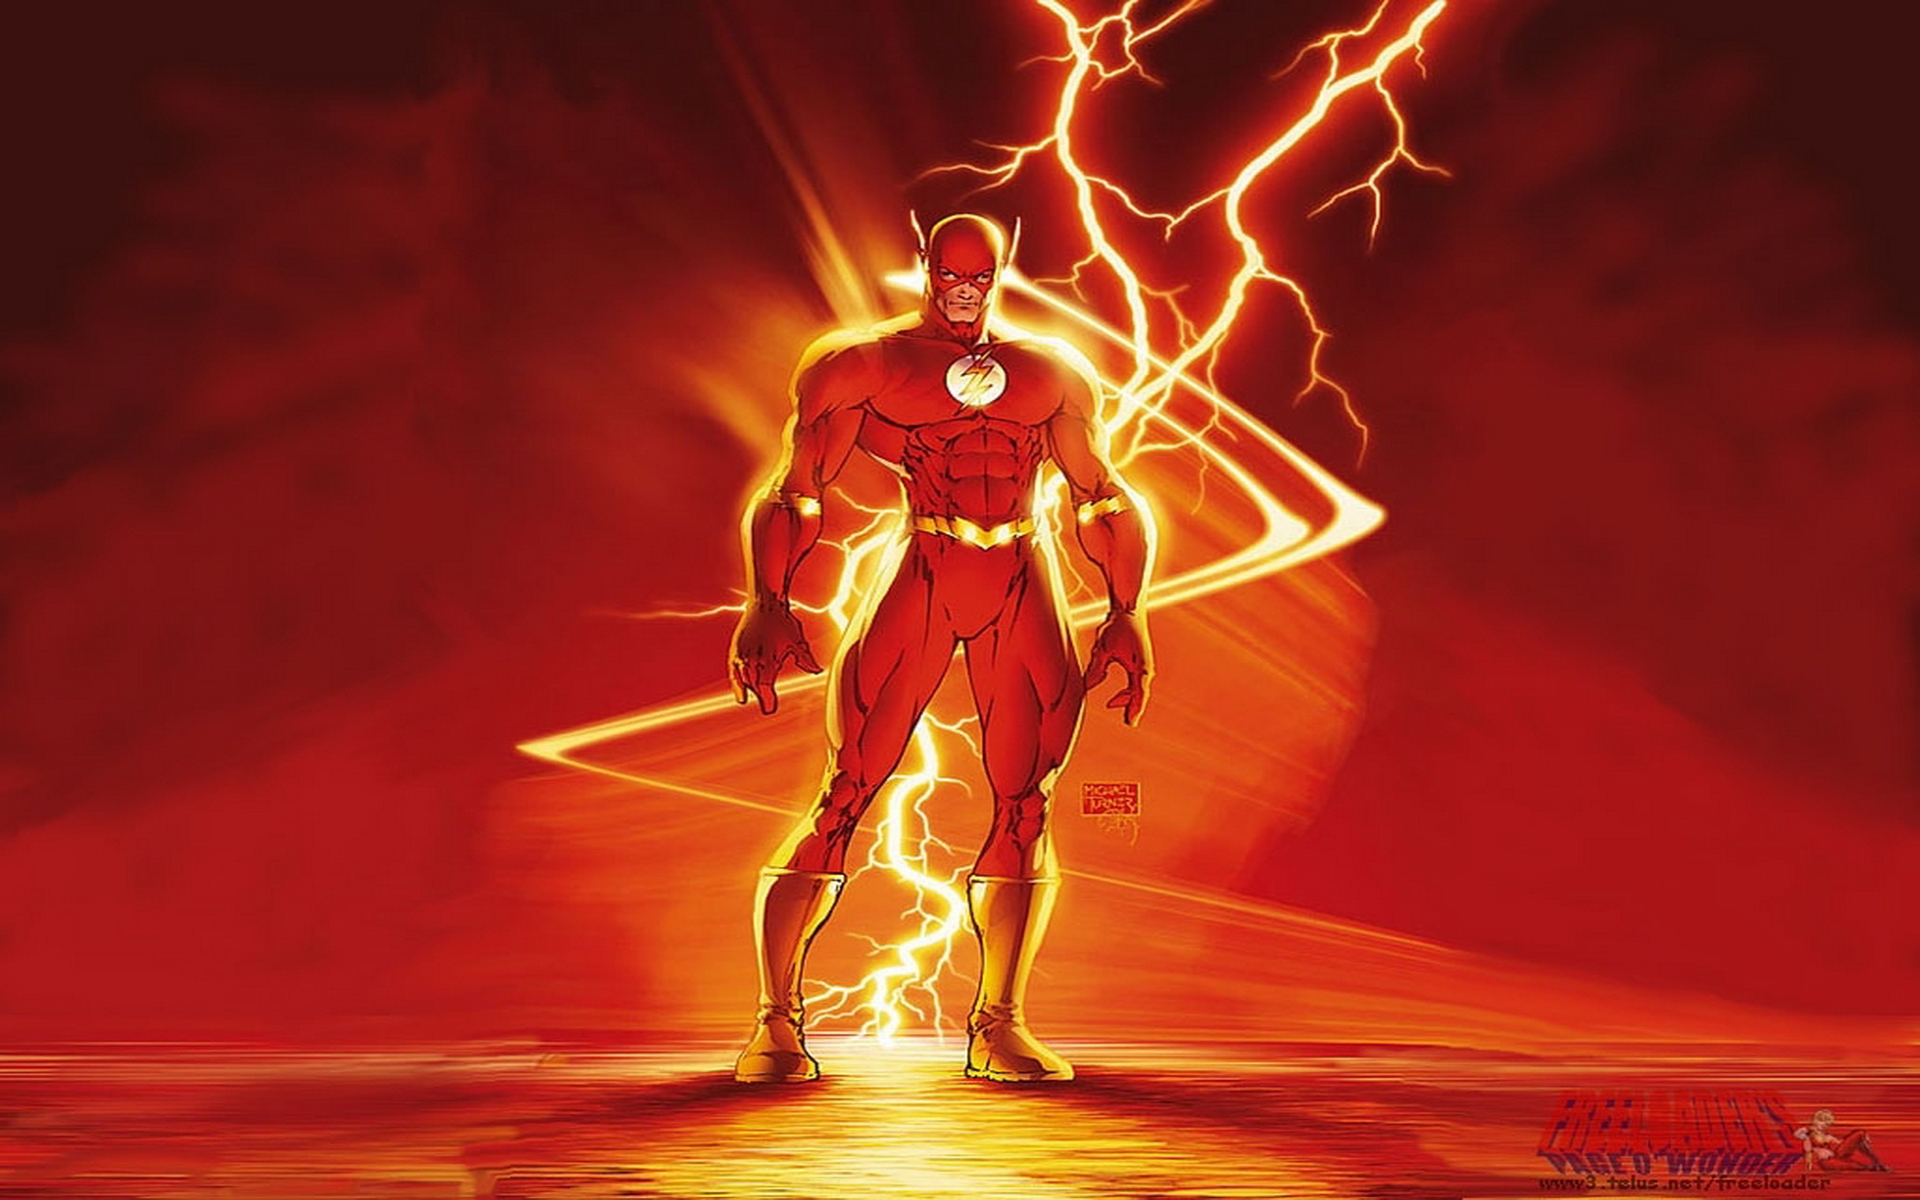 Flash dc comics 75259 Wallpaper DC Comics Wallpaper Picture Desktop 1920x1200